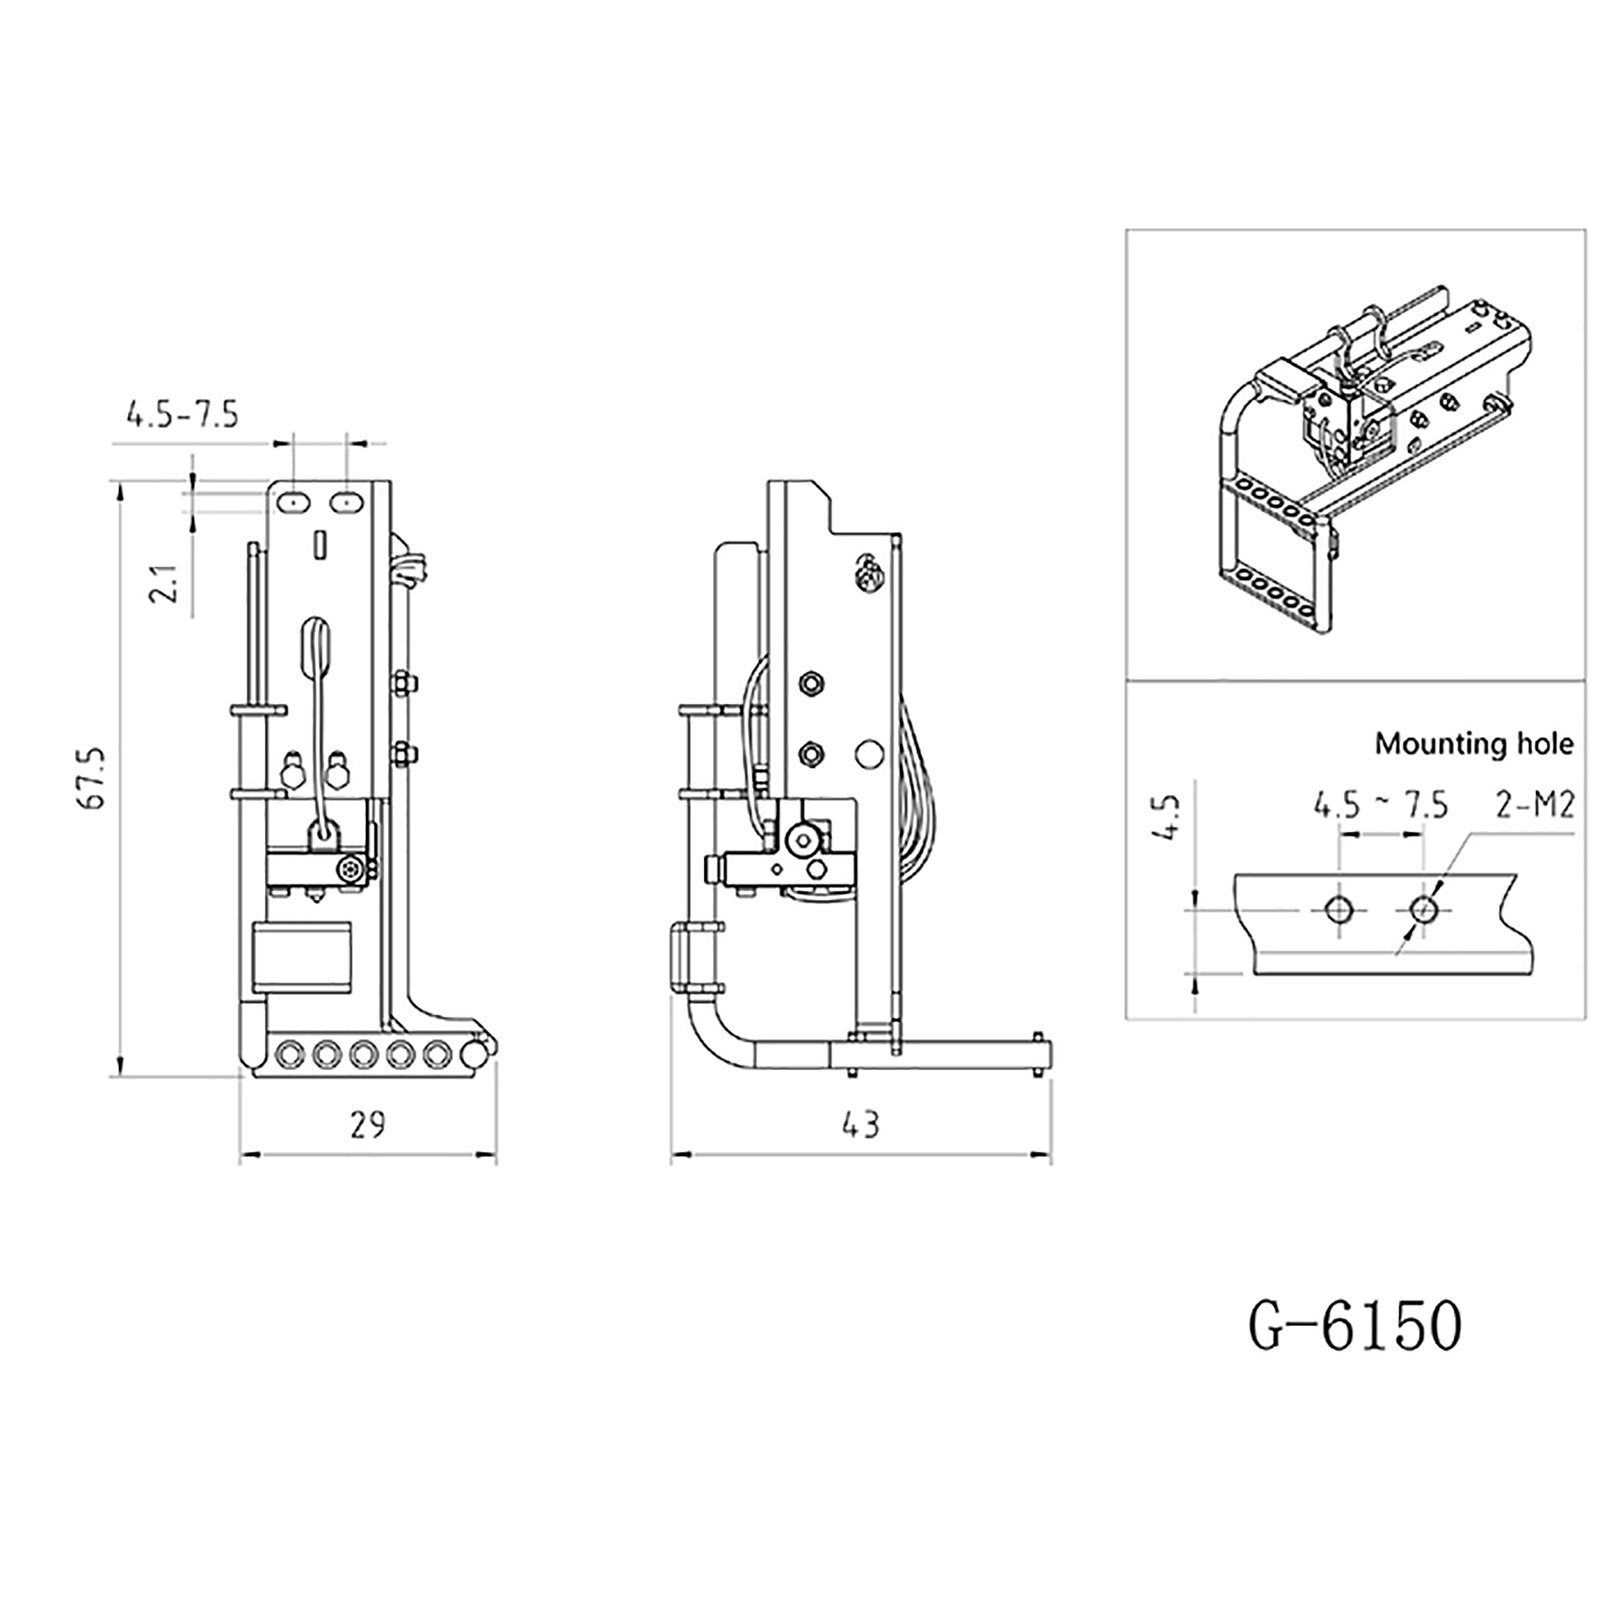 G-6150 Tamiya Tractor Volvo Car Pedal Metal for 1/14 Truck Durable Pedal Modified DIY Model enlarge